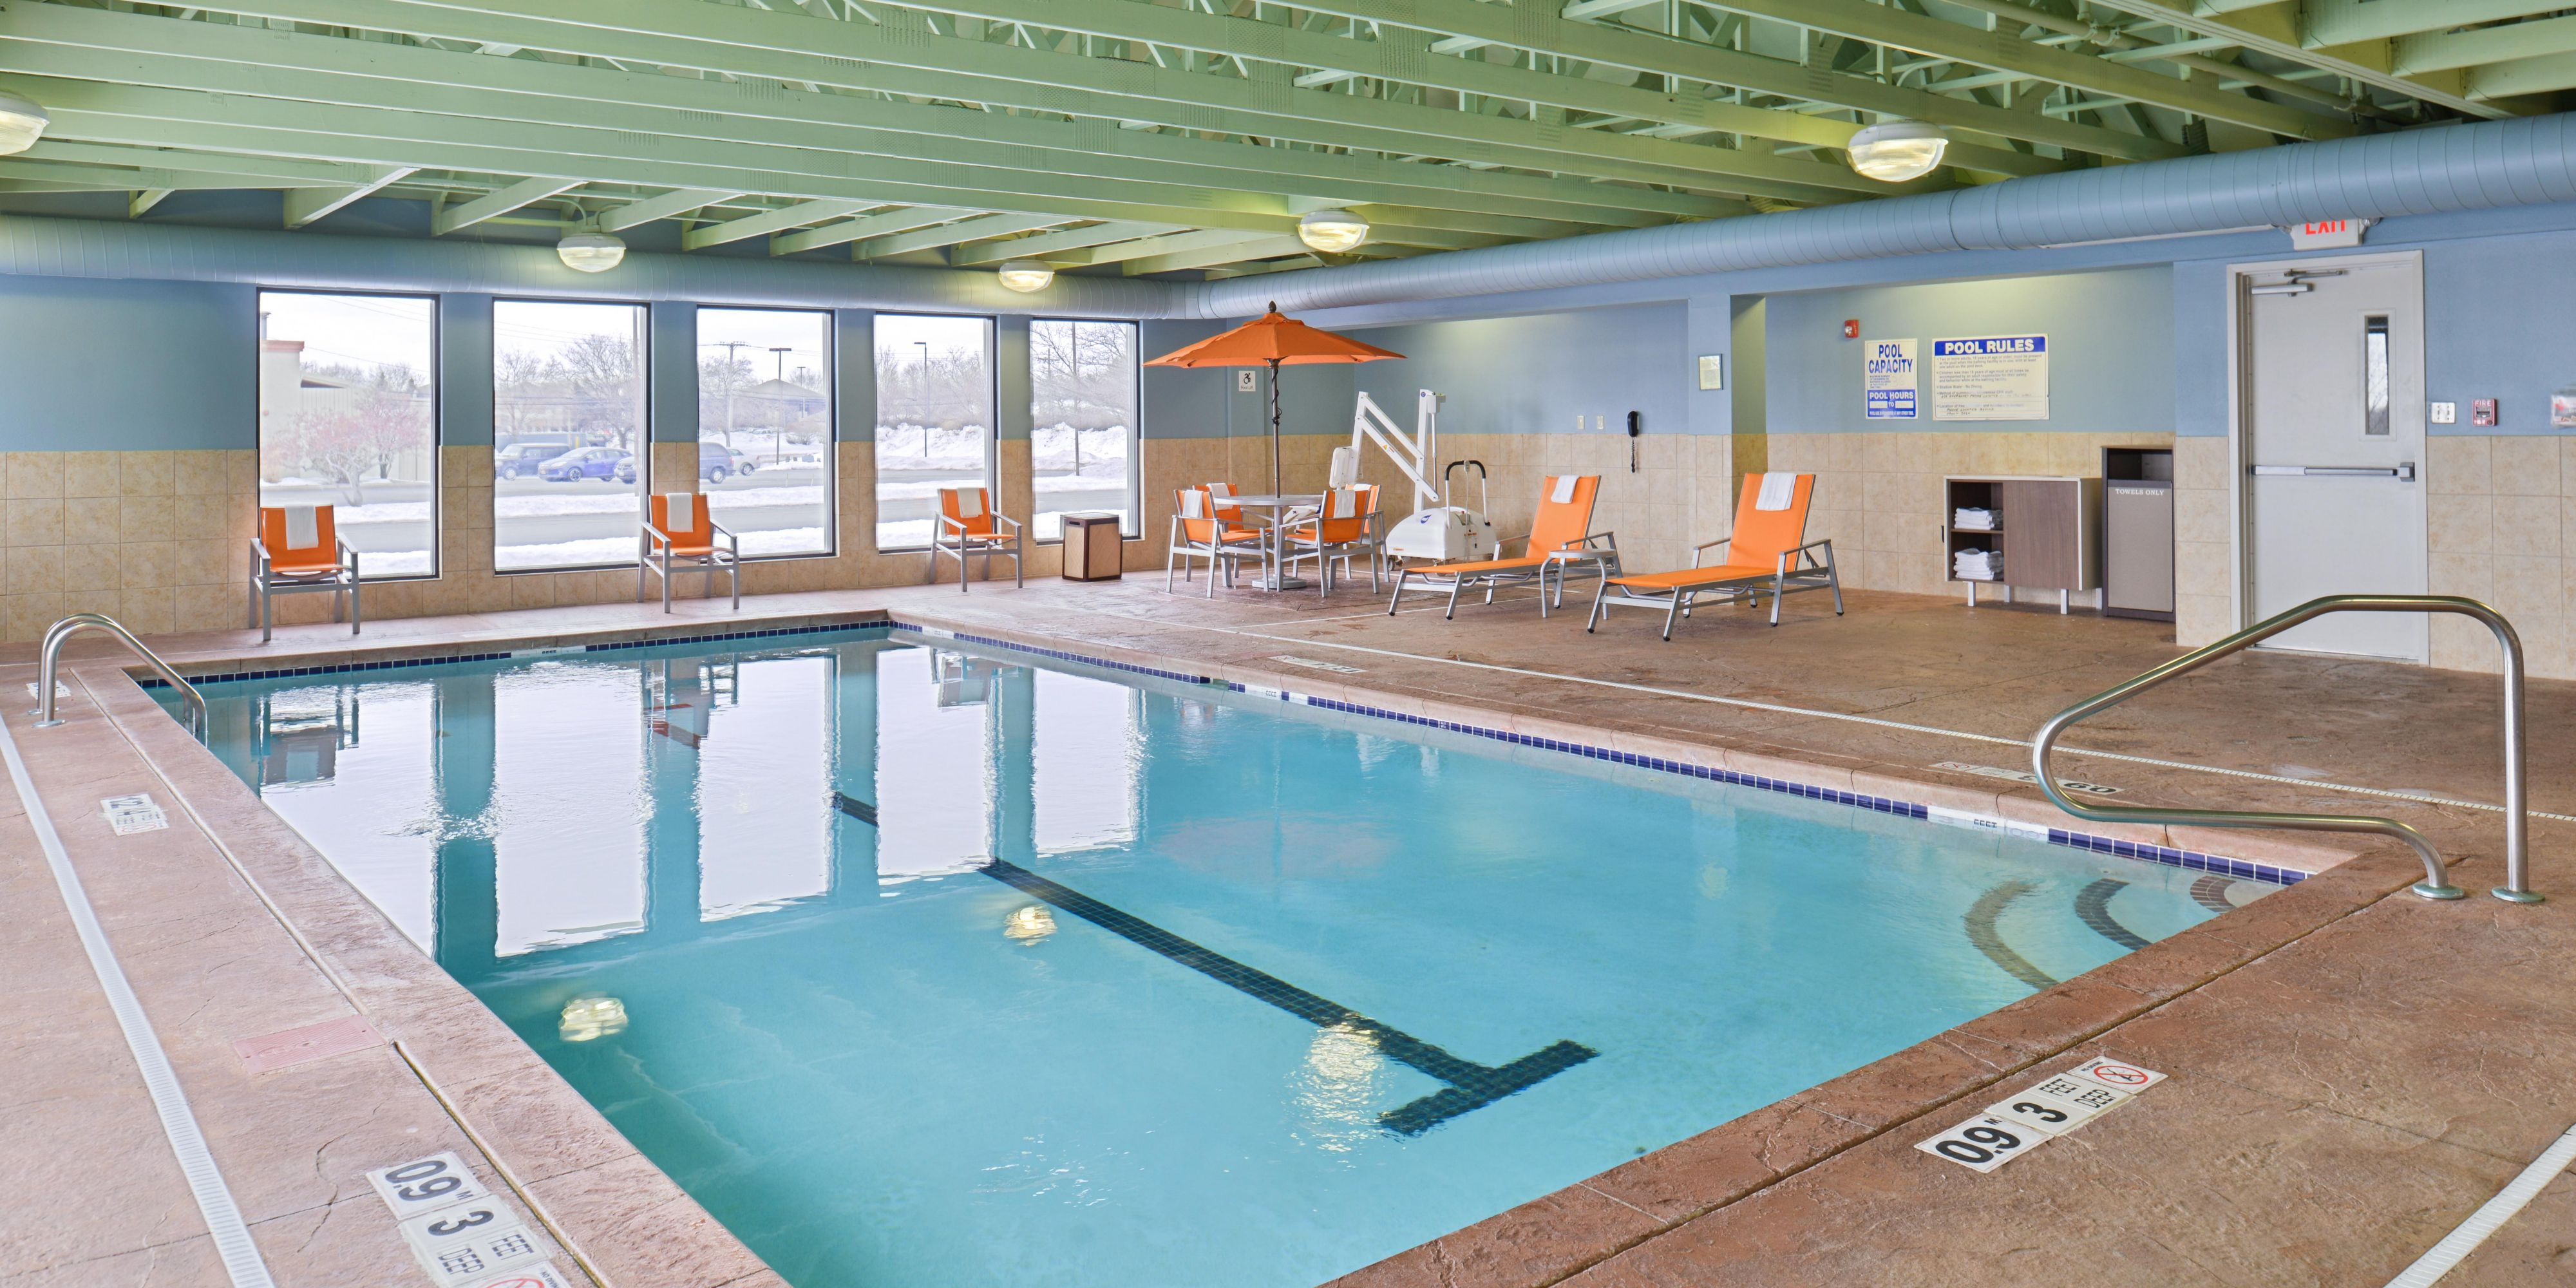 gyms in rochester ny with pools gym zen